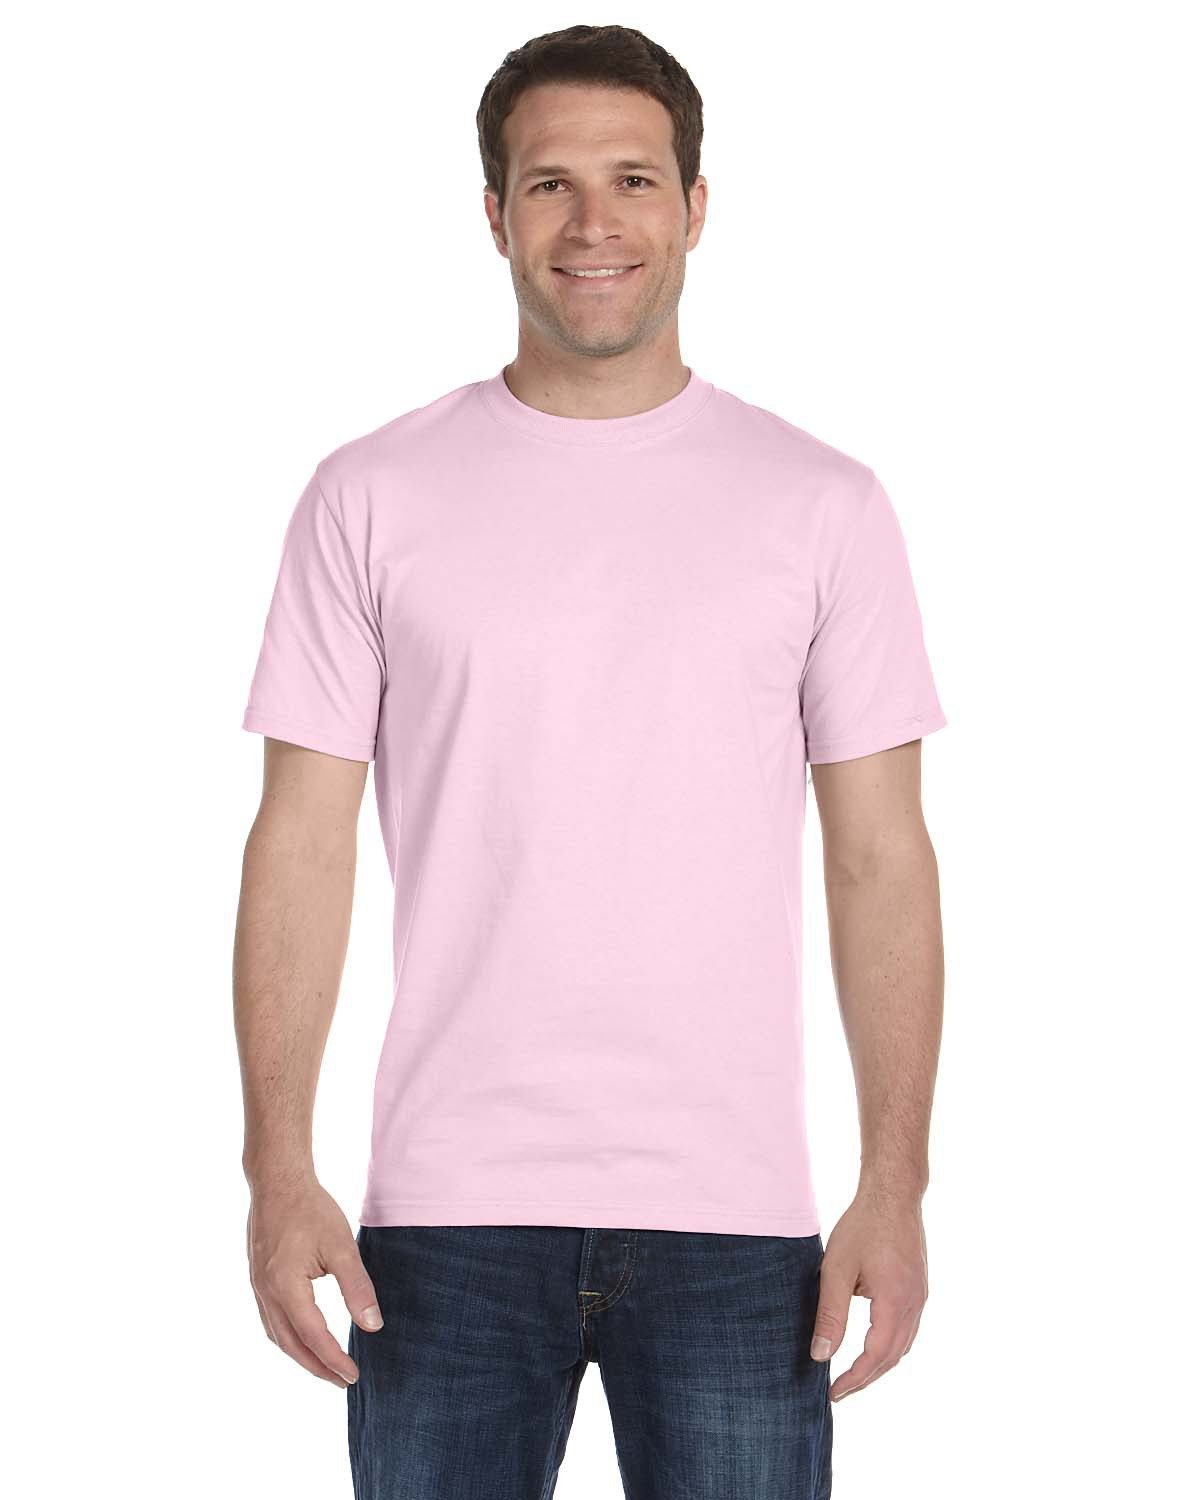 Hanes Unisex Beefy-T® T-Shirt PALE PINK